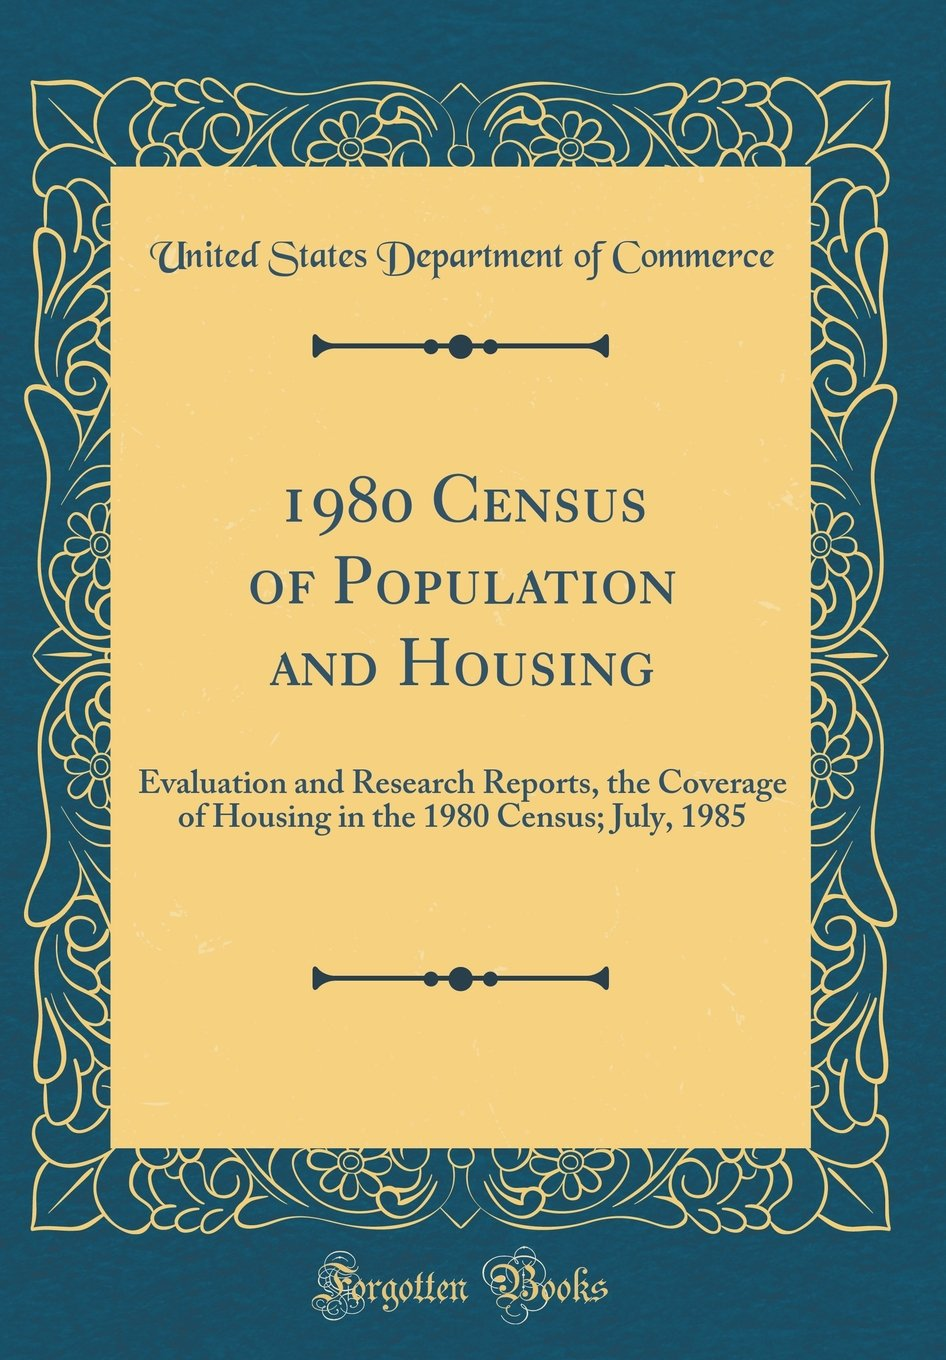 Download 1980 Census of Population and Housing: Evaluation and Research Reports, the Coverage of Housing in the 1980 Census; July, 1985 (Classic Reprint) PDF